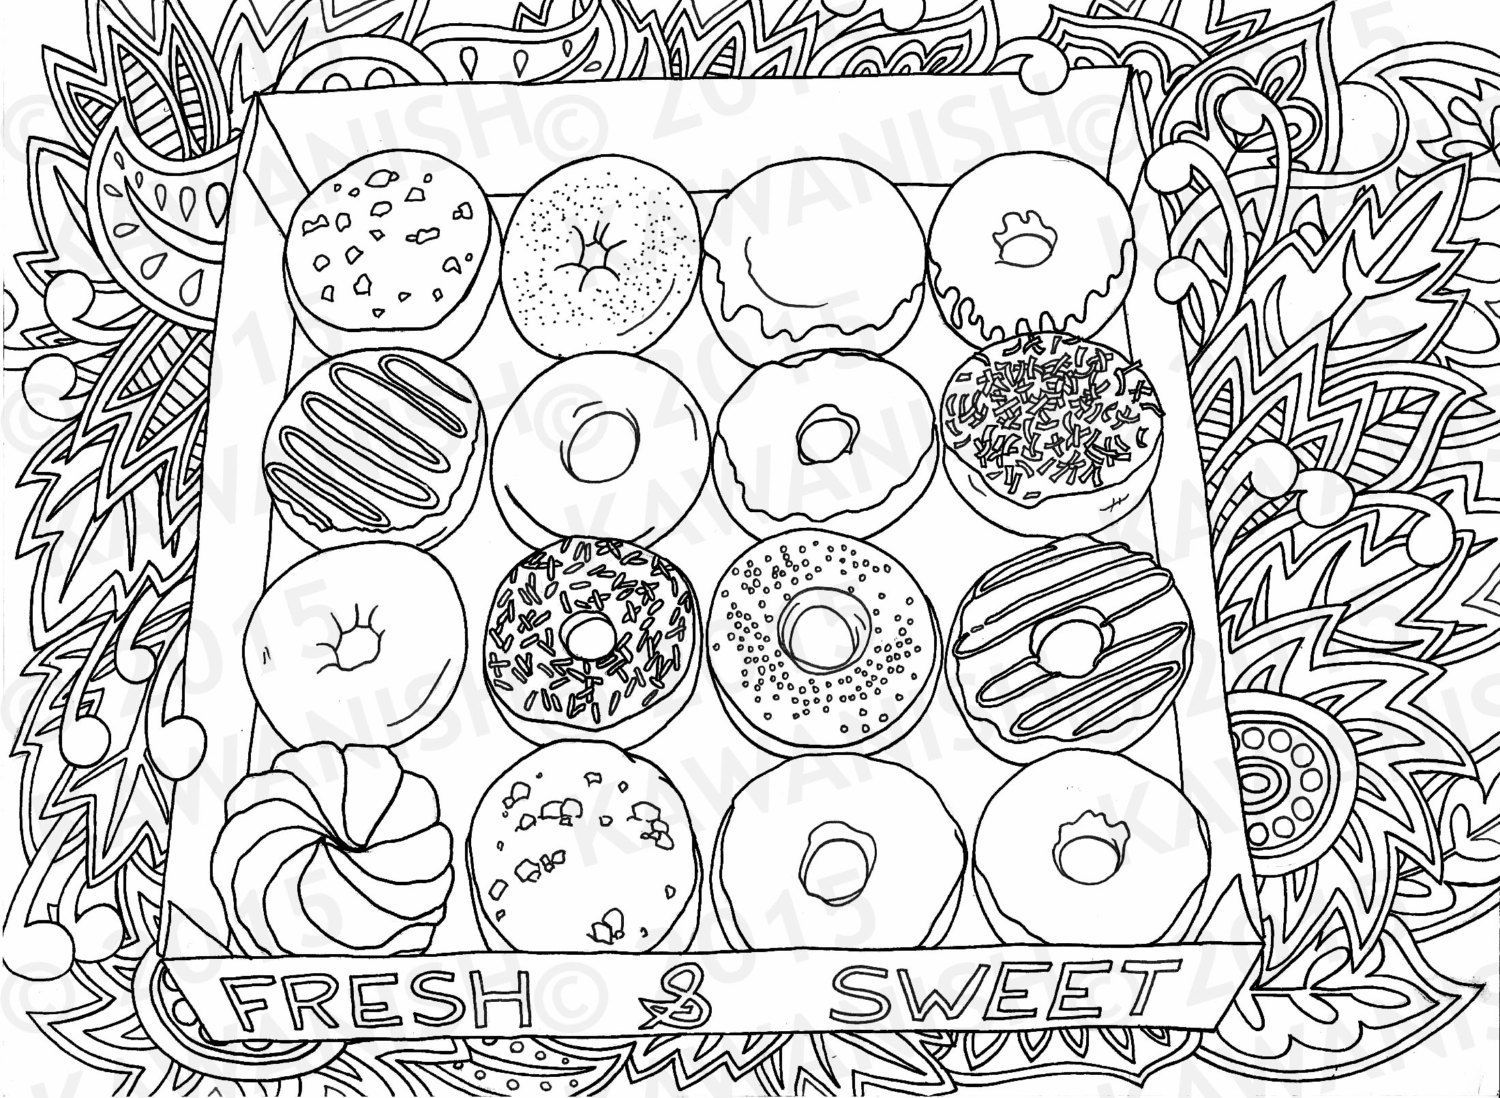 Grab Your New Coloring Pages Donuts For You Https Gethighit Com New Coloring Pages Donuts For You 2 Food Coloring Pages Donut Coloring Page Coloring Pages